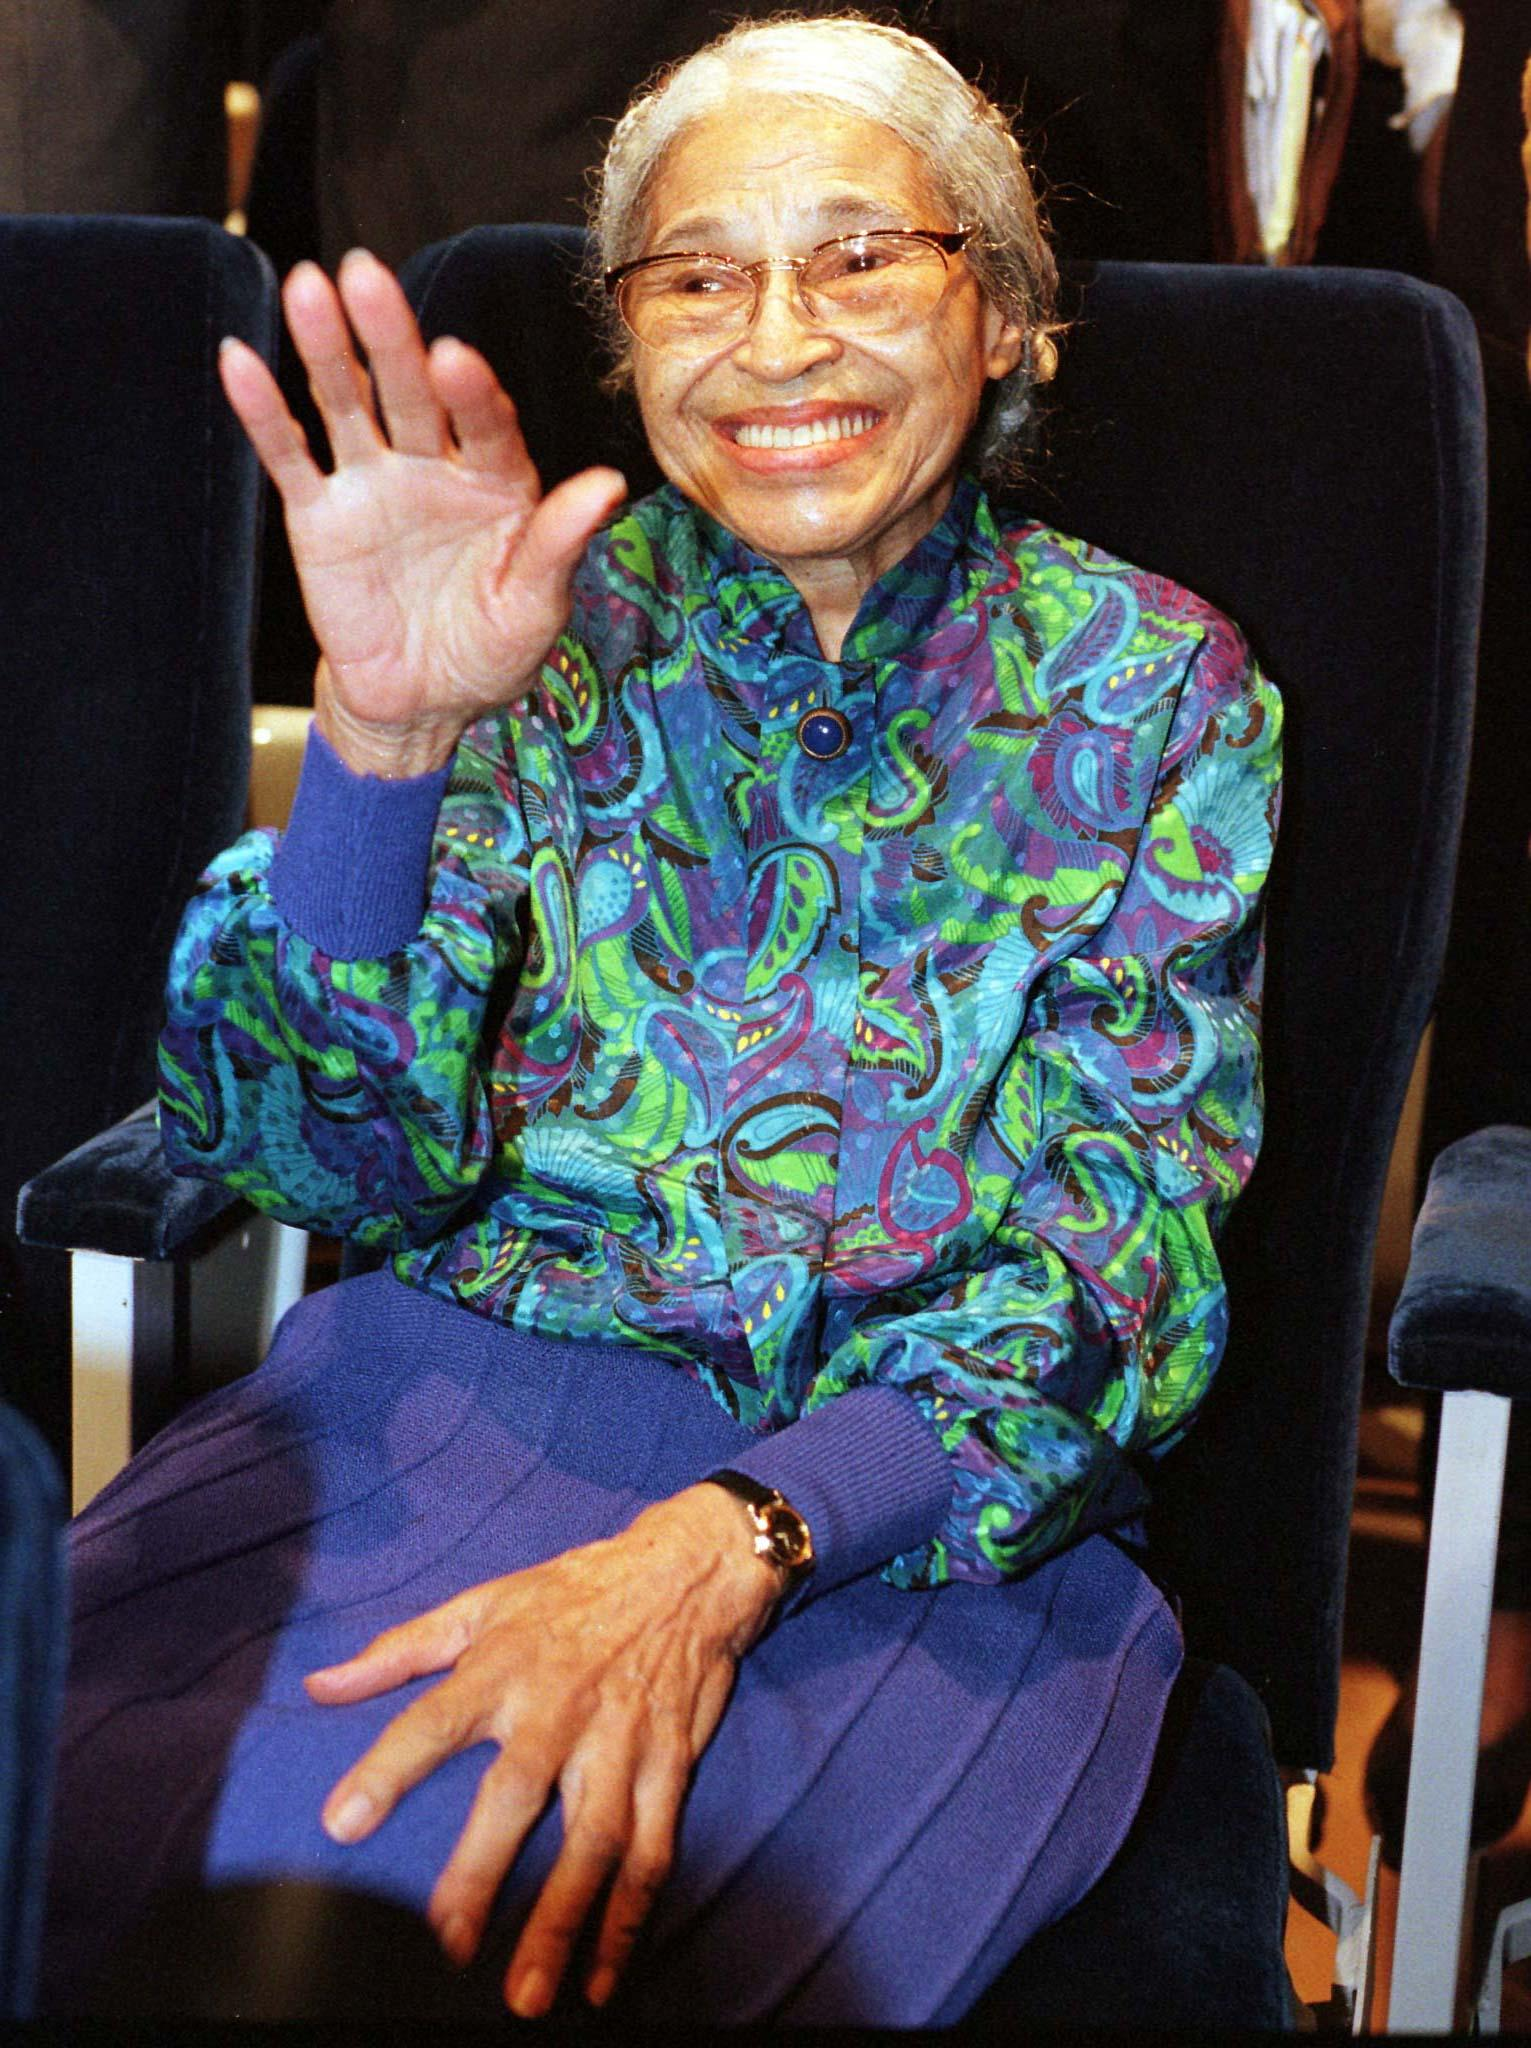 Rosa Parks waves during an event in 1998.